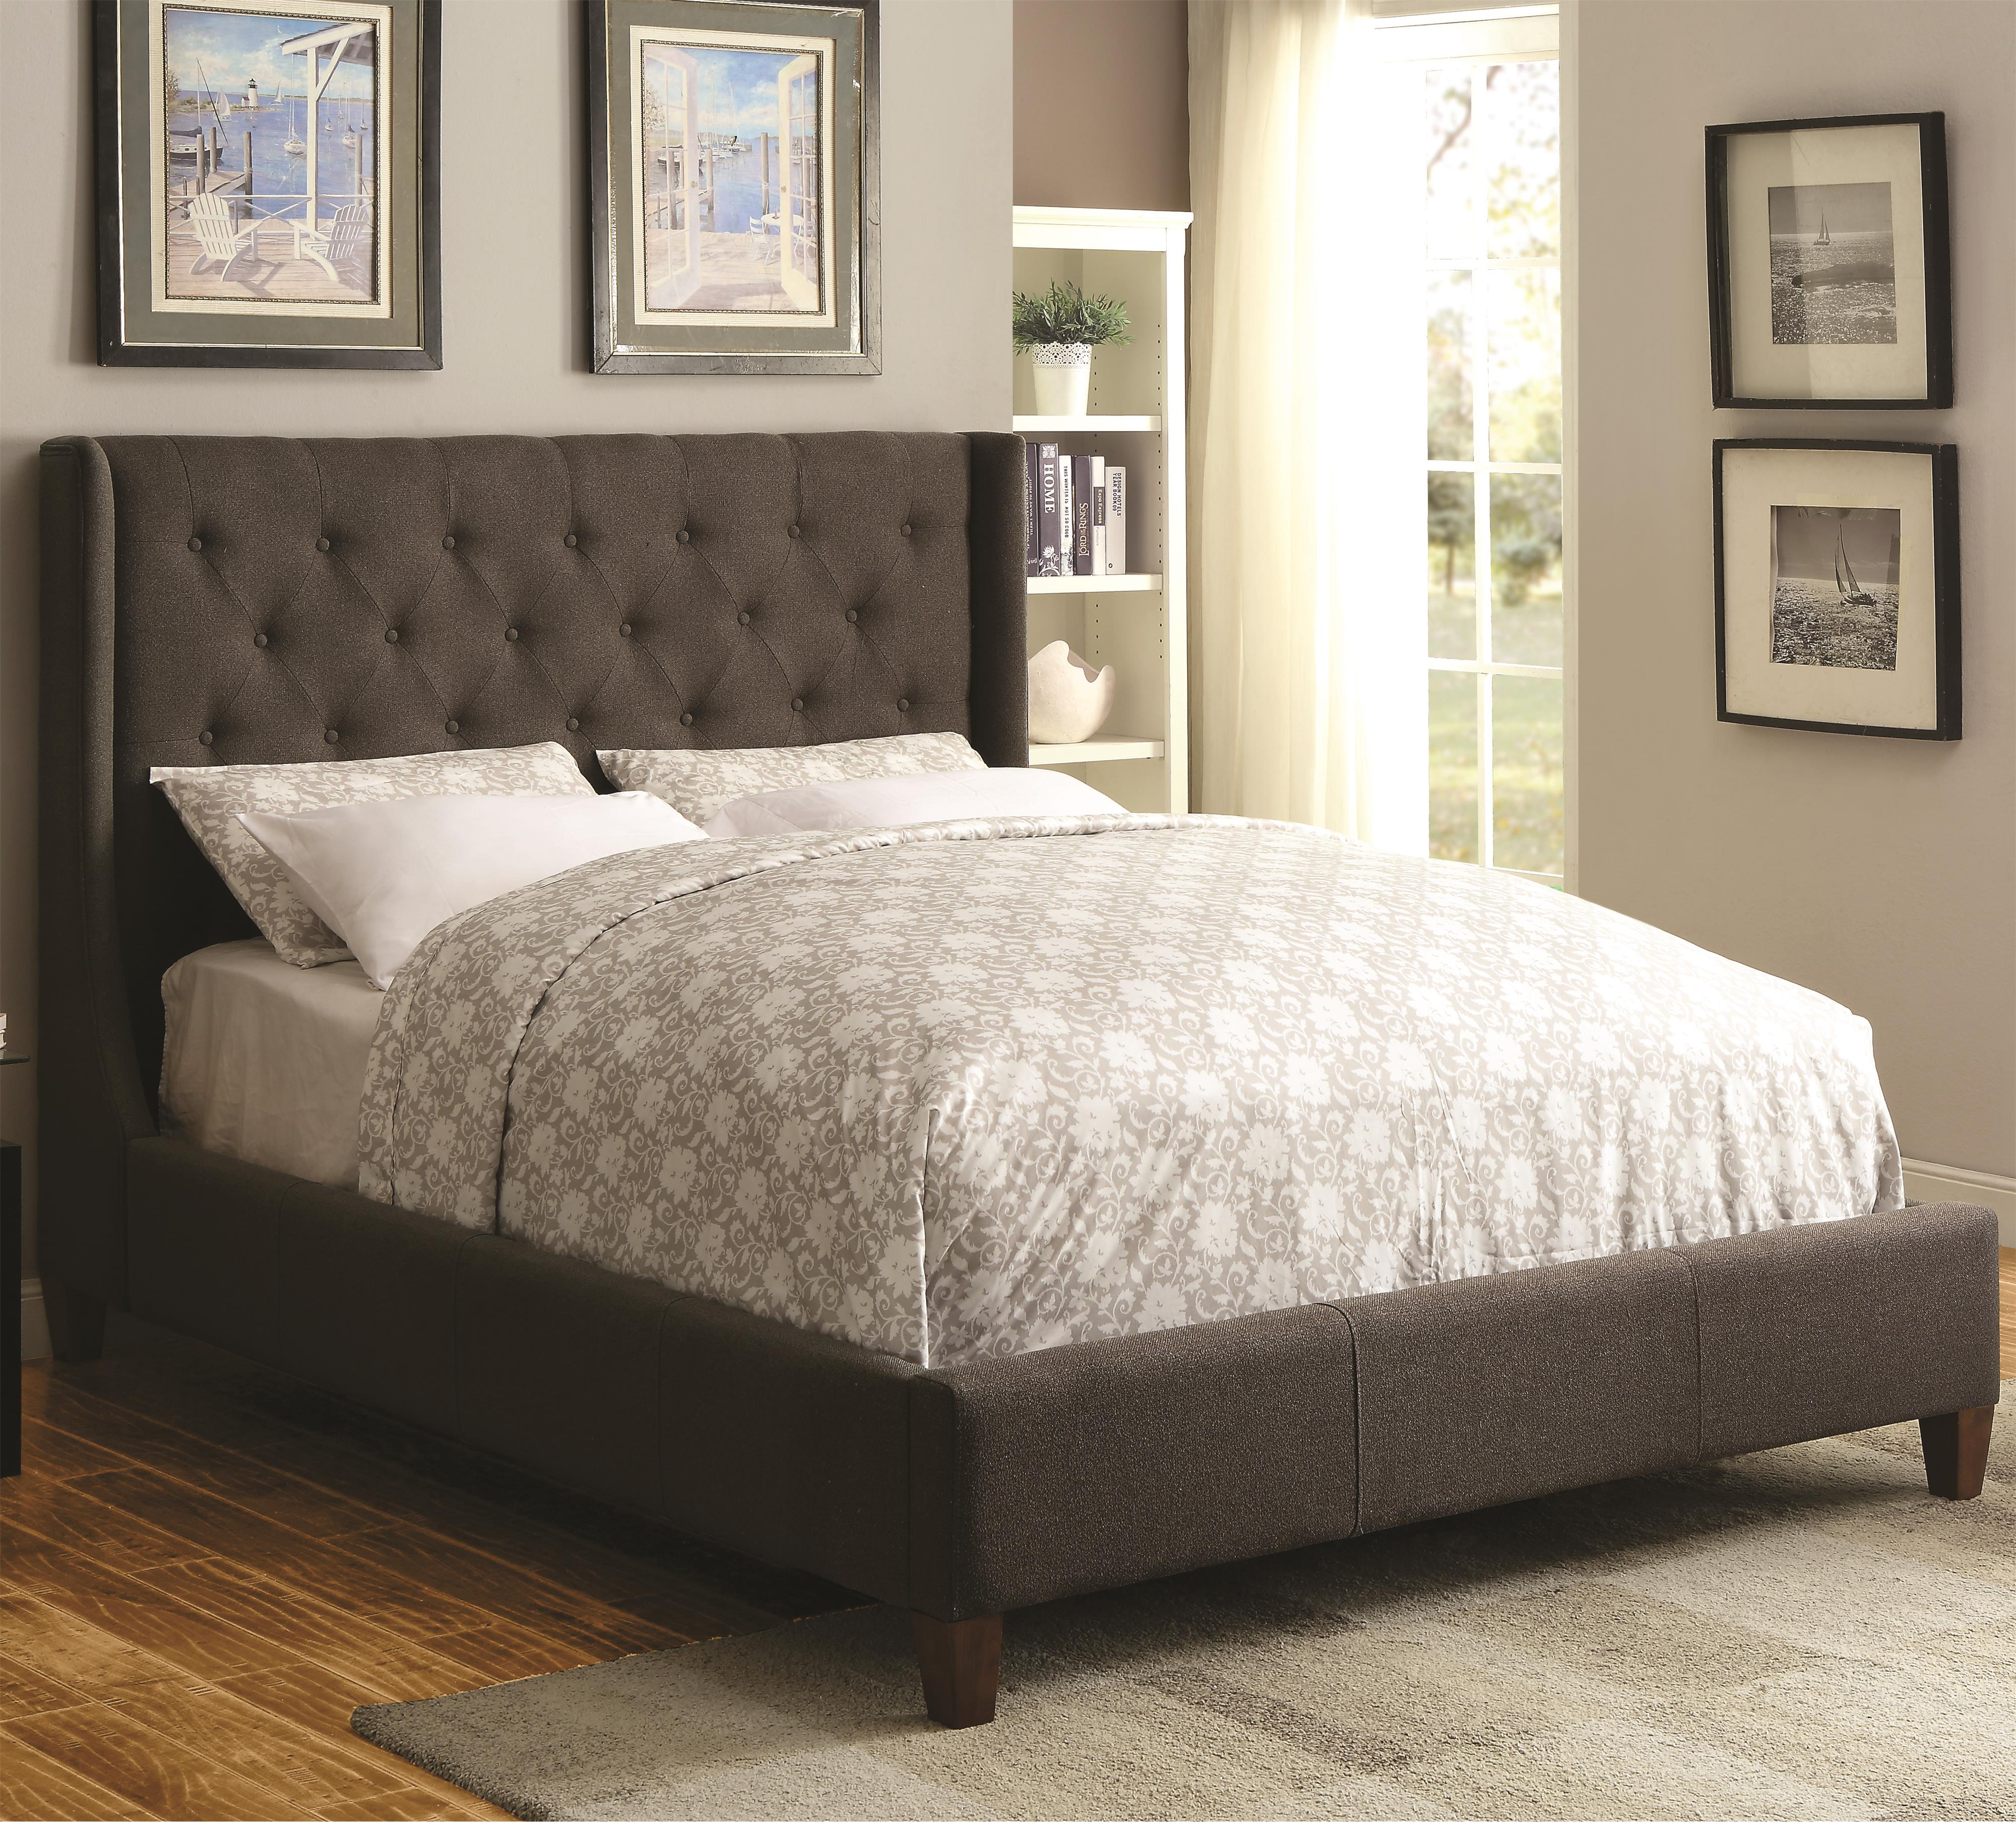 Upholstered Beds Upholstered King Bed With Tall Tufted Headboard Quality Furniture At Affordable Prices In Philadelphia Main Line Pa